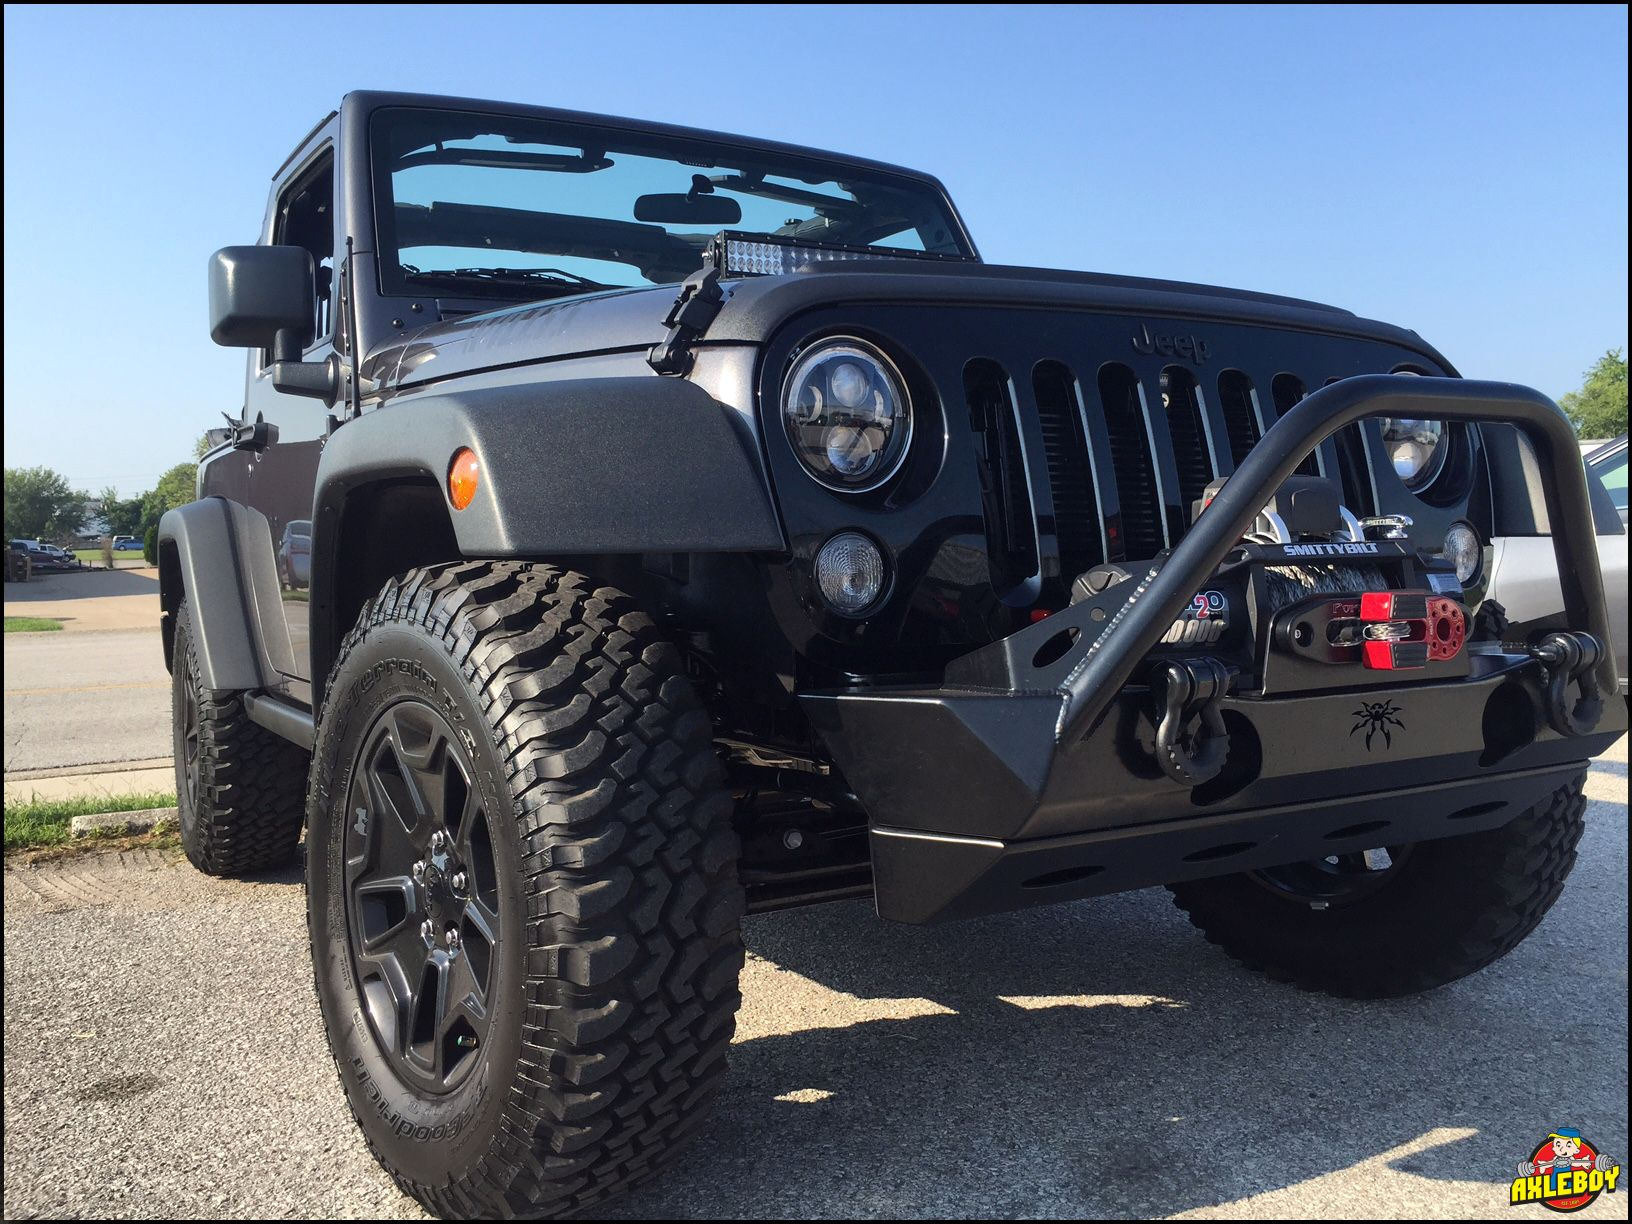 2016 jeep wrangler willys with a poison spyder front bumper and smittybilt winch. Black Bedroom Furniture Sets. Home Design Ideas